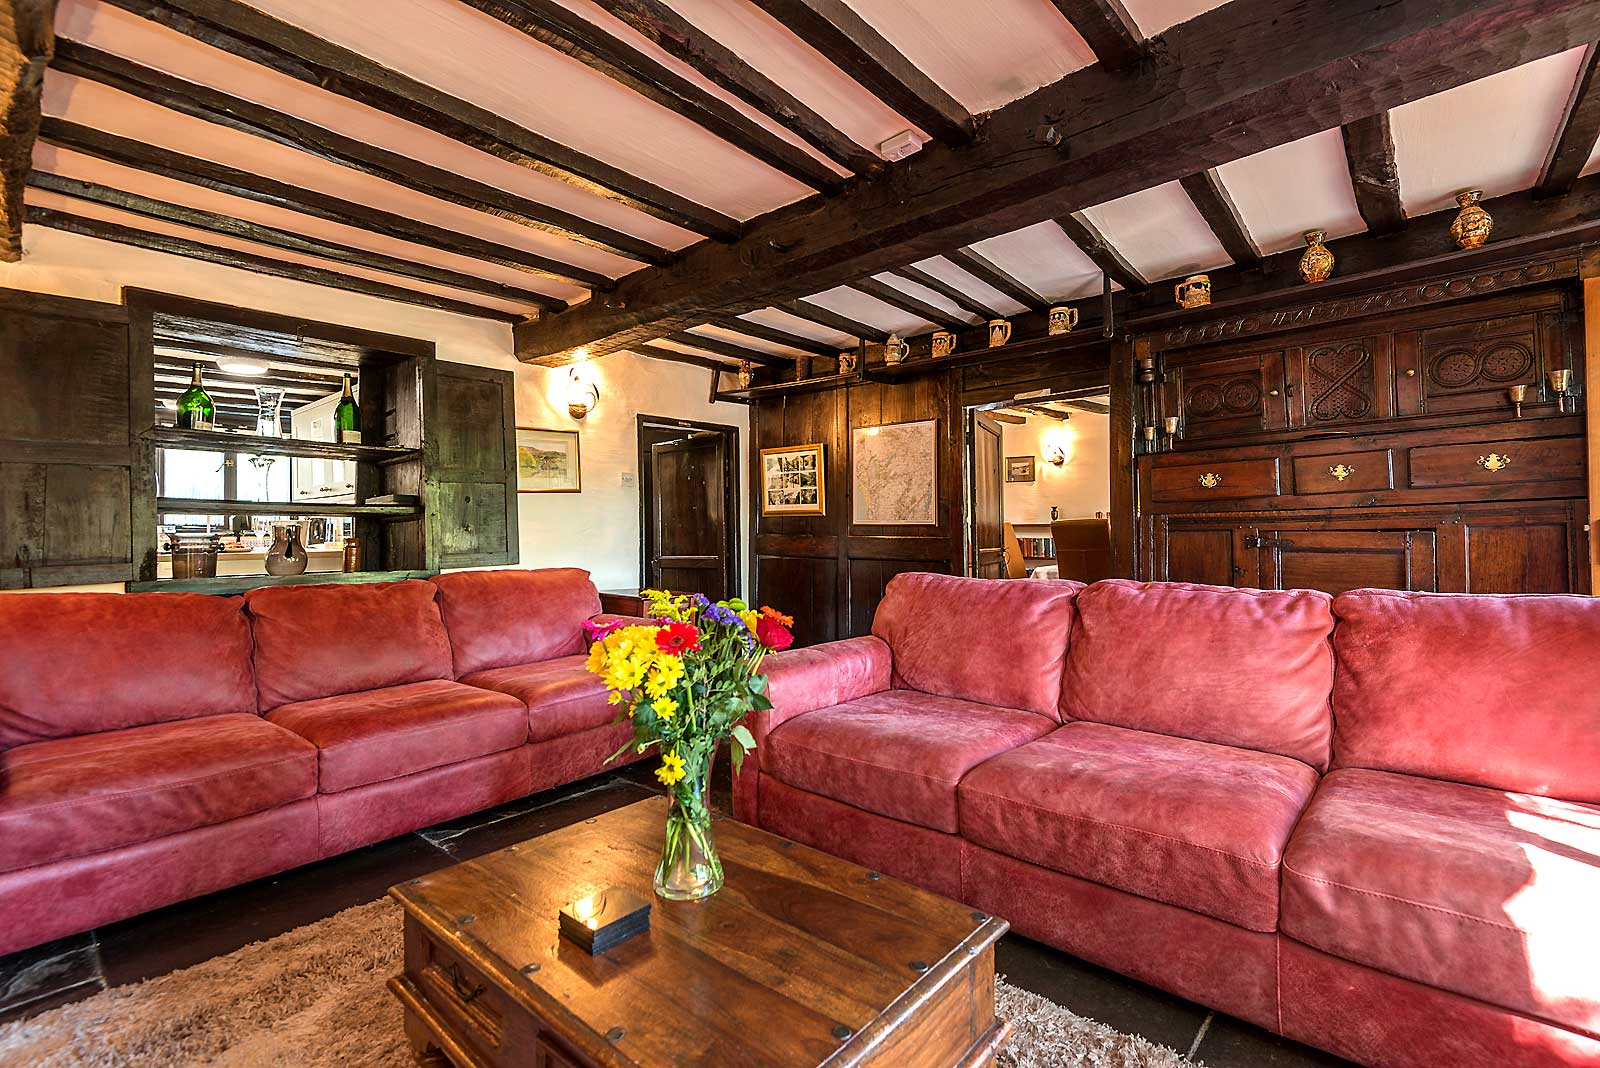 https://www.selectcottages.com/sites/default/files/revslider/image/farmhouse-lounge-500-years.jpg